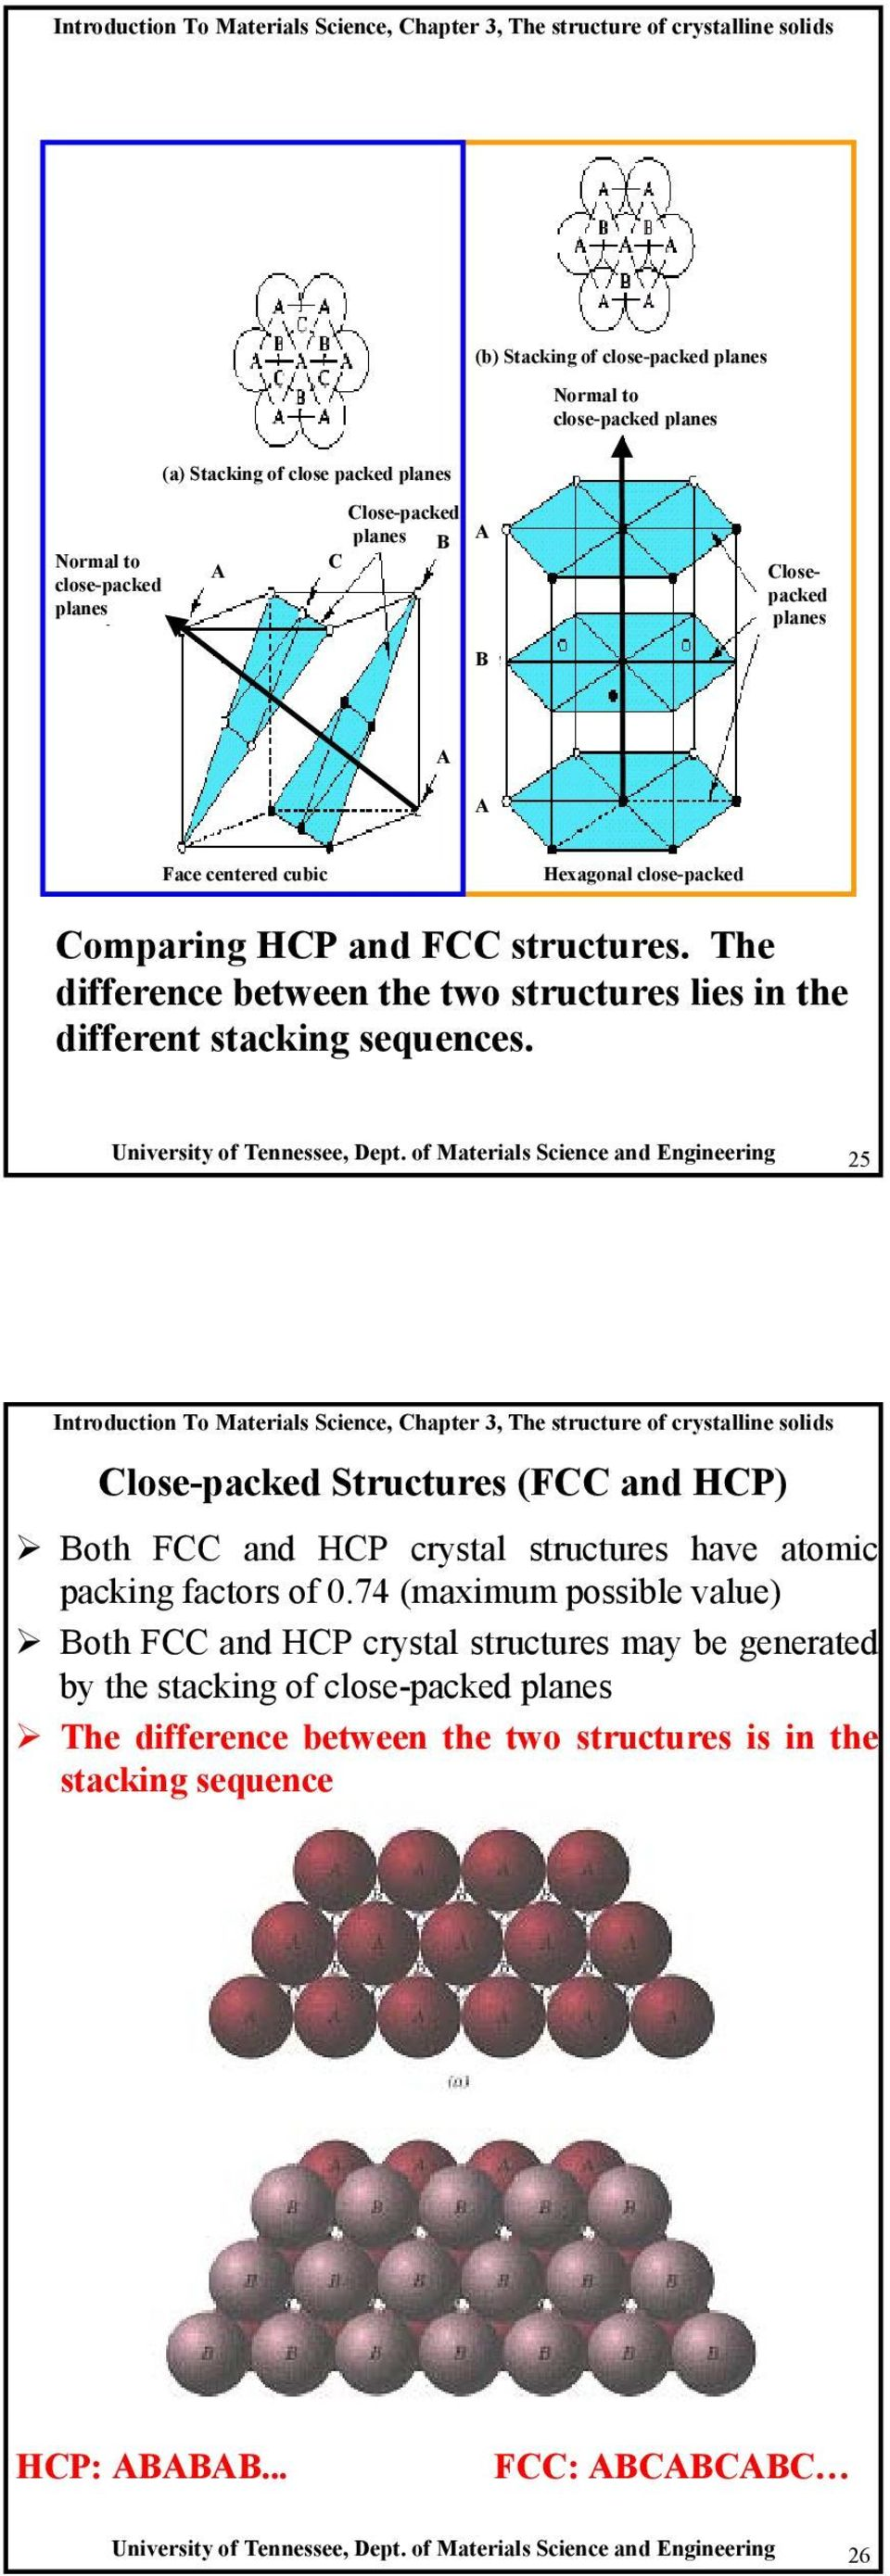 of Materials Science and Engineering 25 Close-packed Structures (FCC and HCP) Both FCC and HCP crystal structures have atomic packing factors of 0.